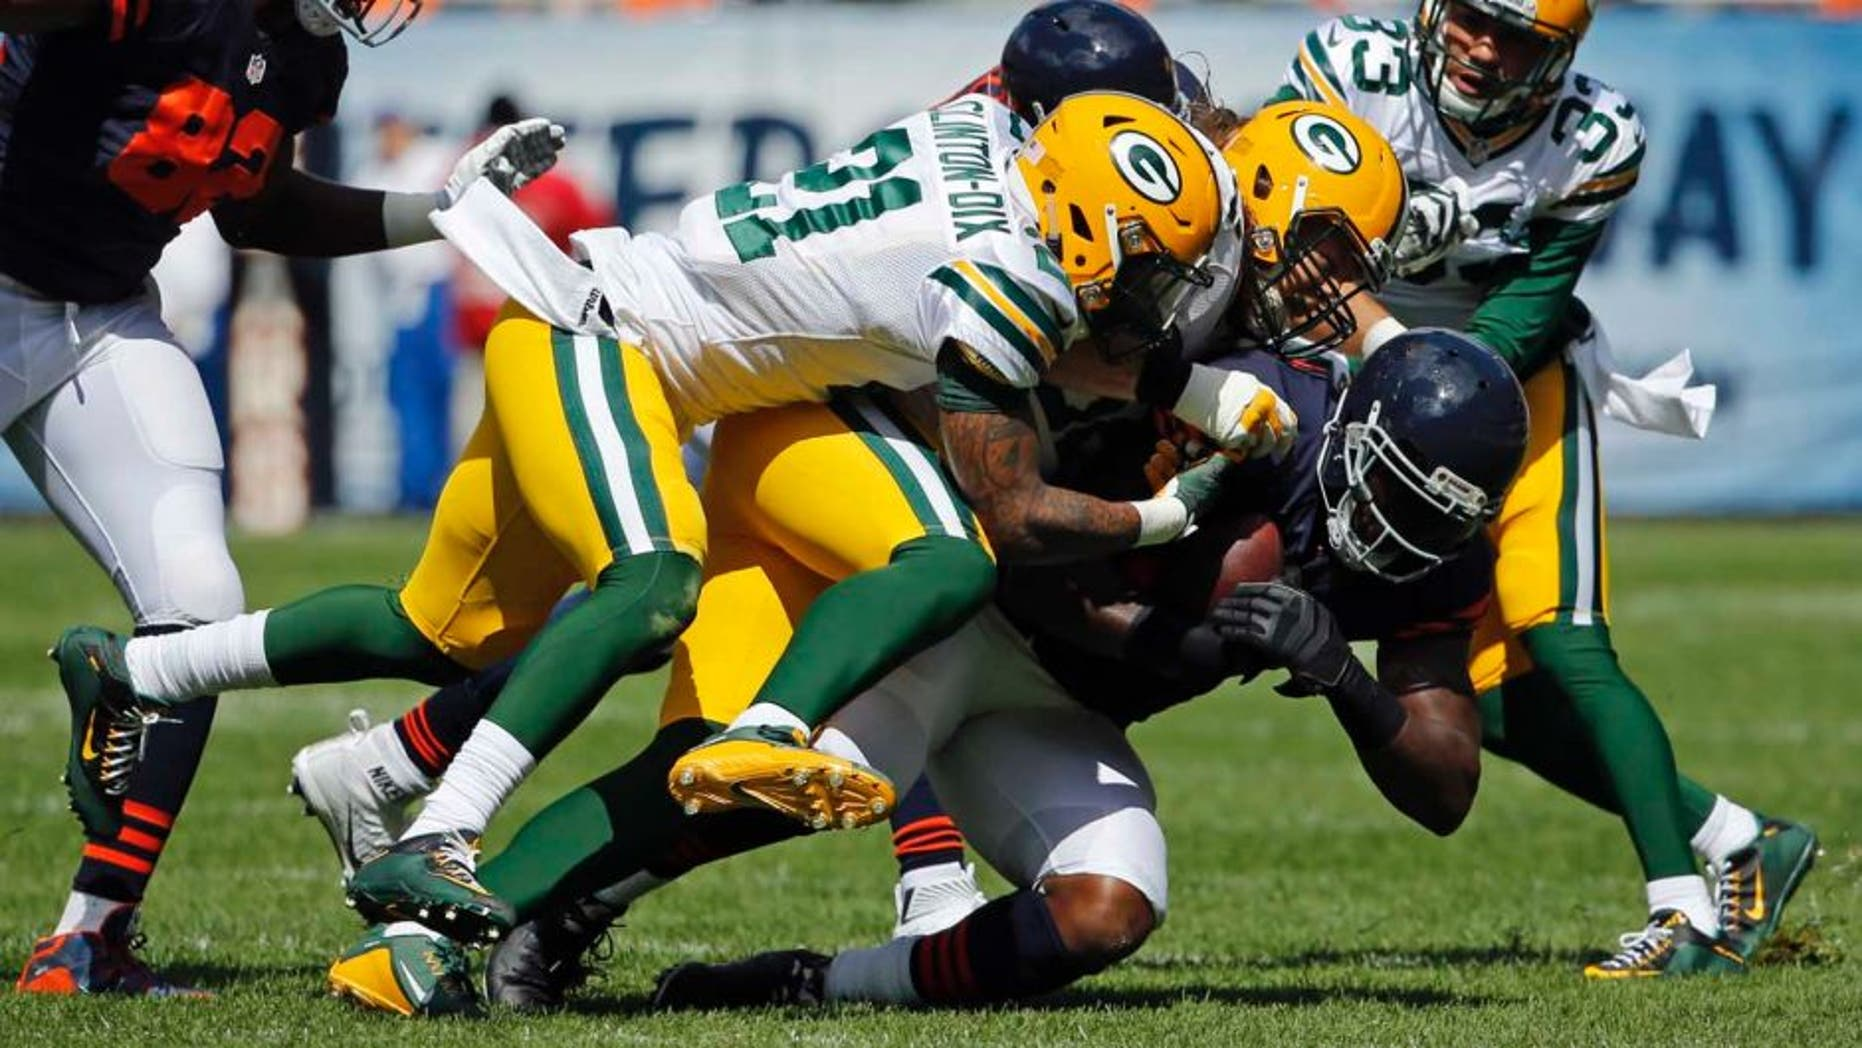 Chicago Bears tight end Martellus Bennett is tackled by the Green Bay Packers during the first half of an NFL football game, Sunday, Sept. 13, 2015, in Chicago.